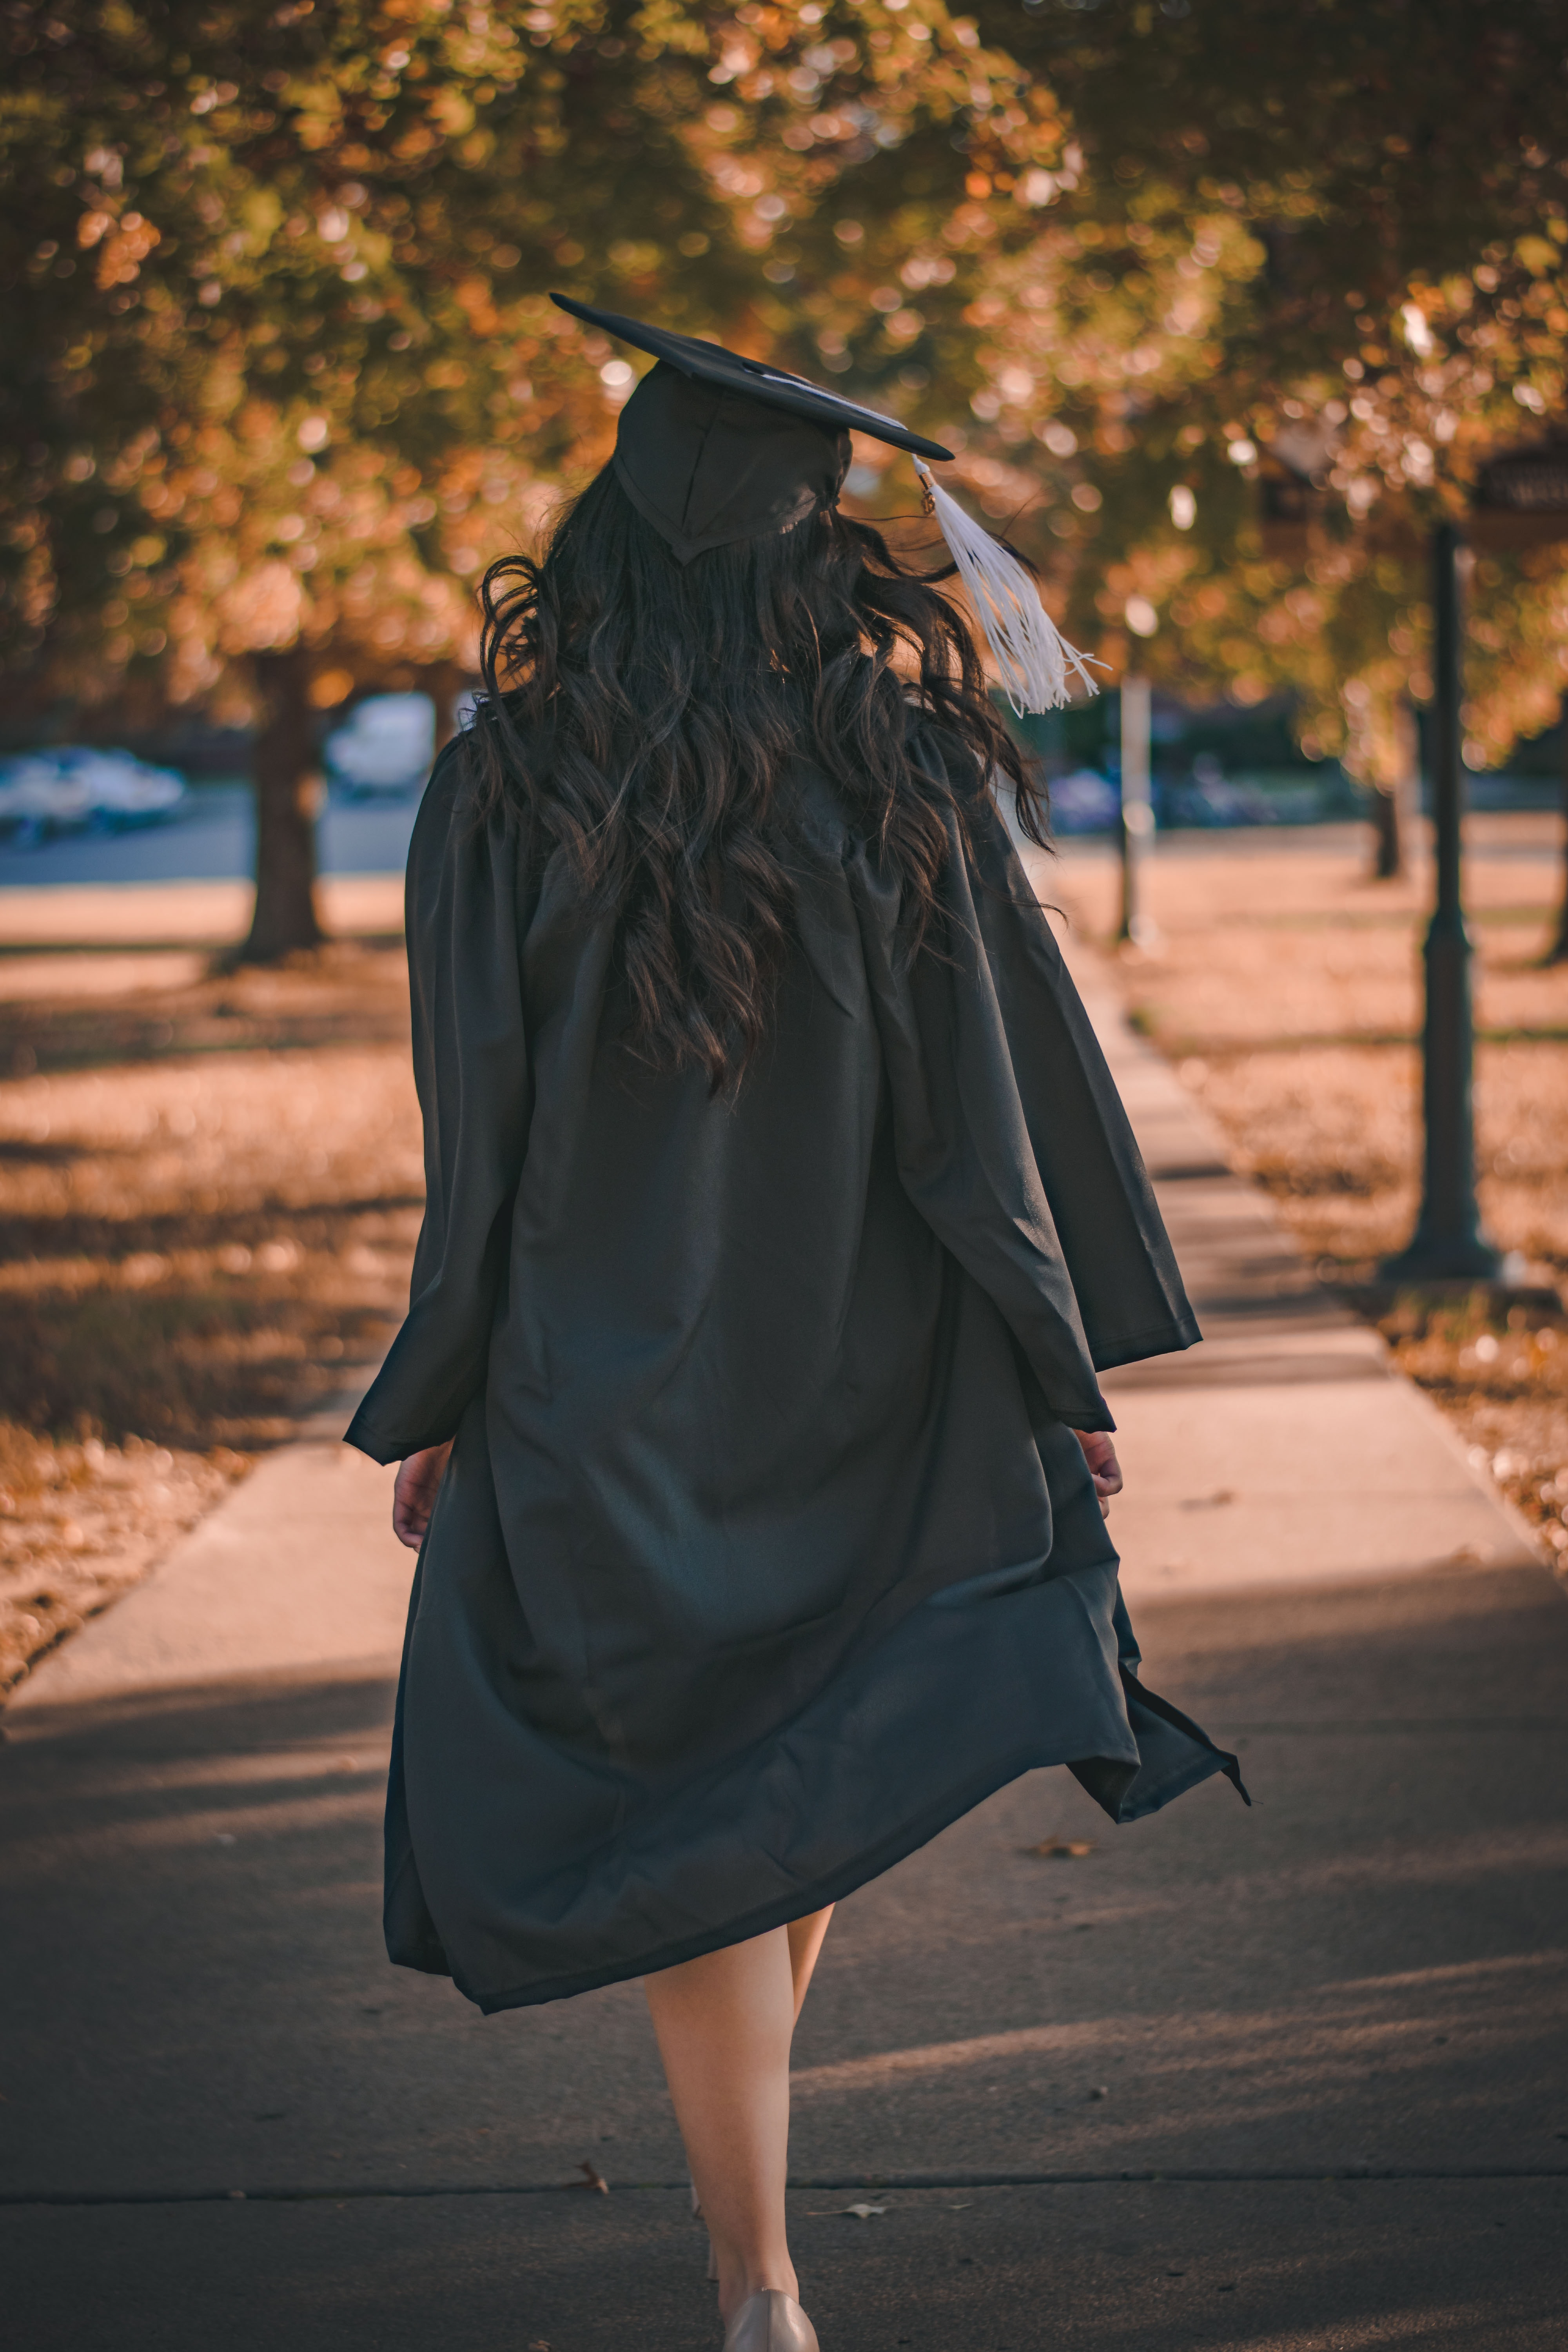 Student in graduating cap and gown with back turned to the camera.